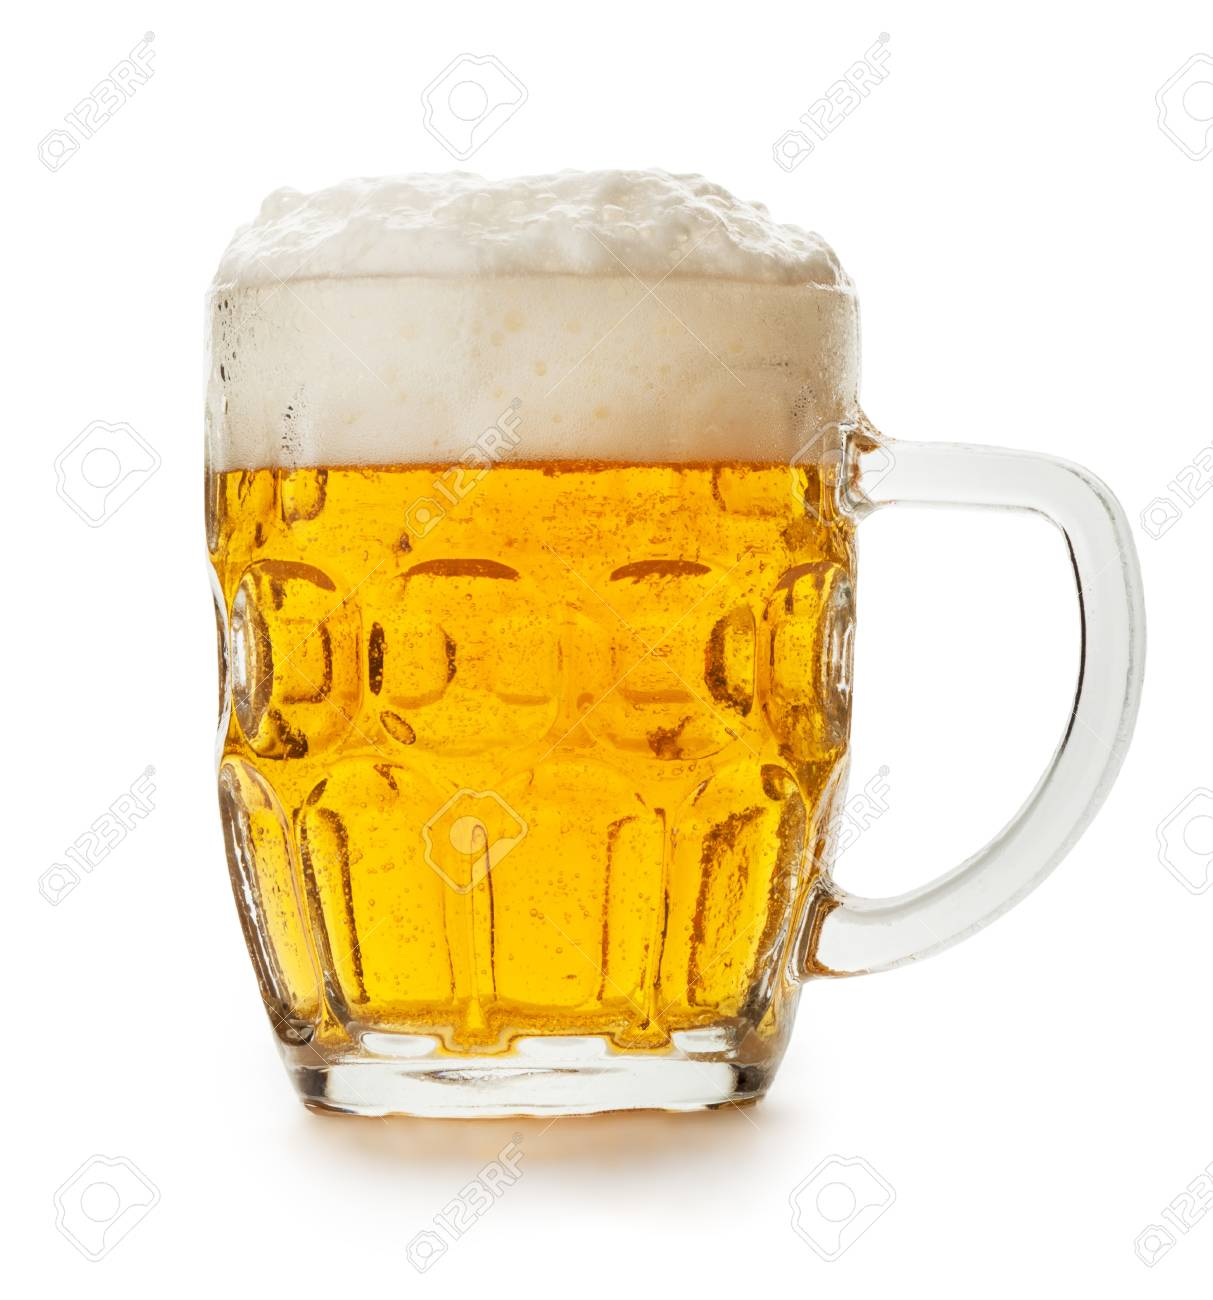 mug of beer isolated on the white background Stock Photo - 16575841